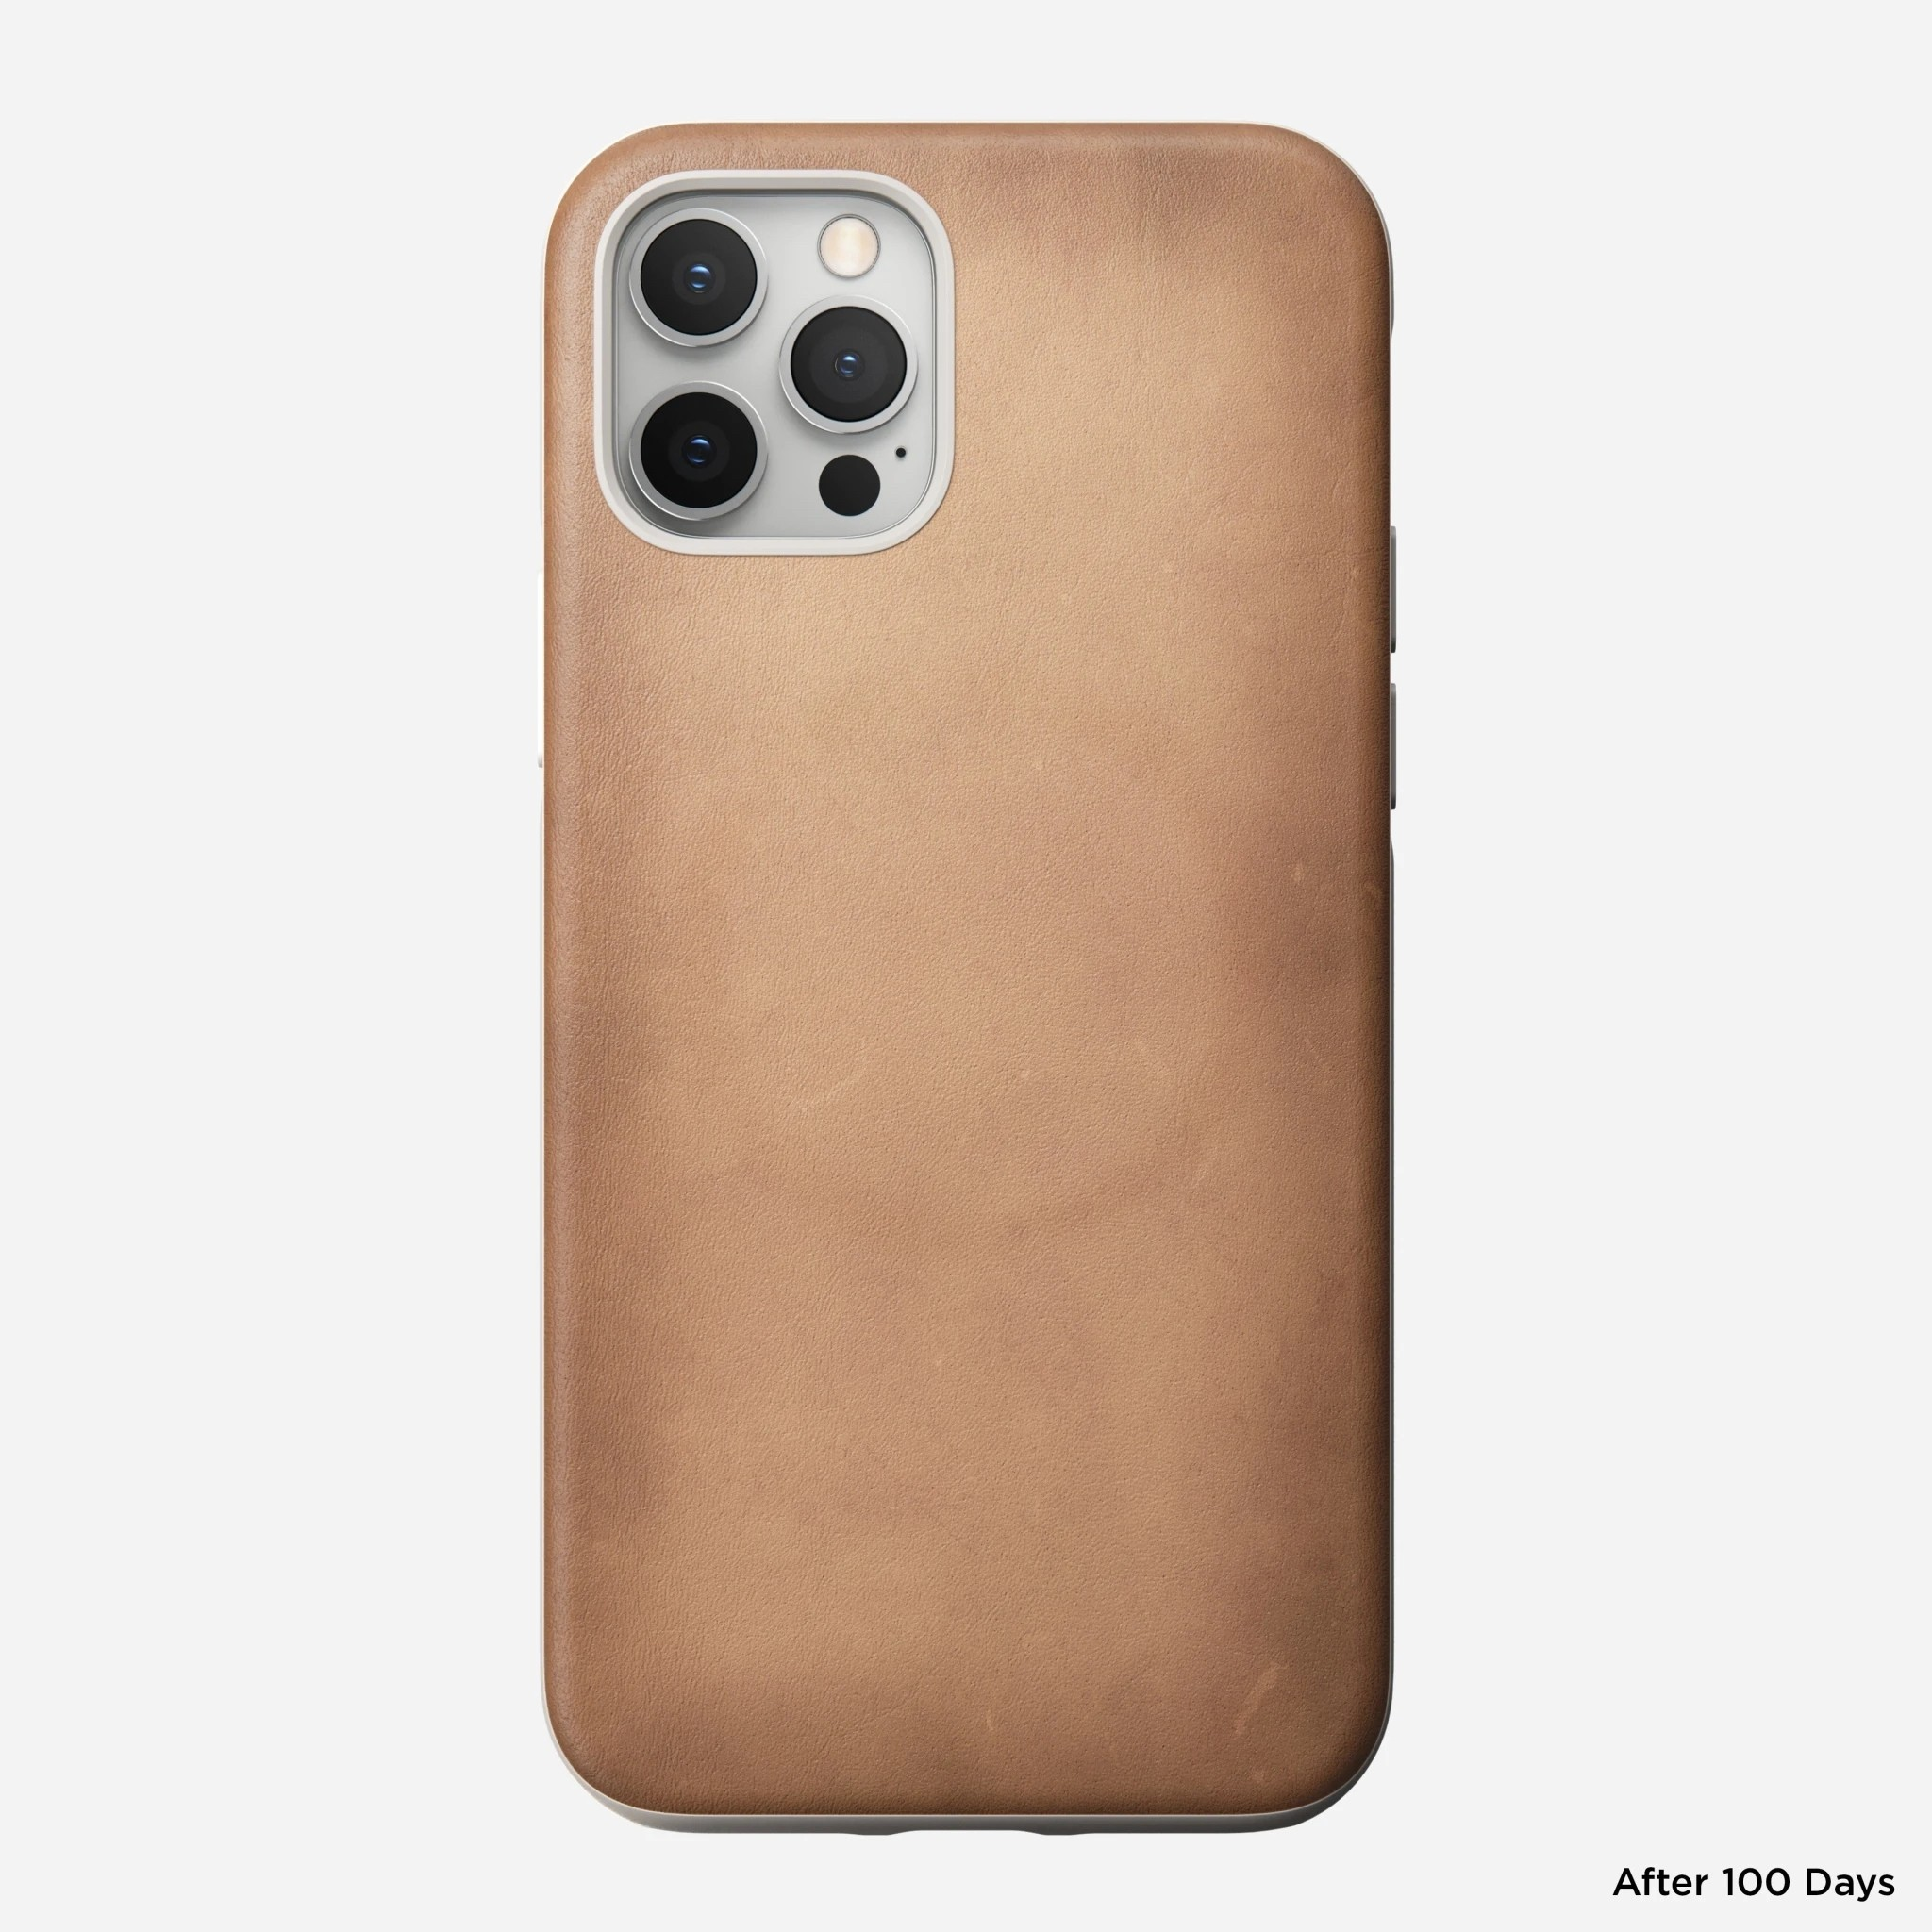 Nomad - MagSafe Leather Case - iPhone 12/12 Pro - Natural, NM01972785